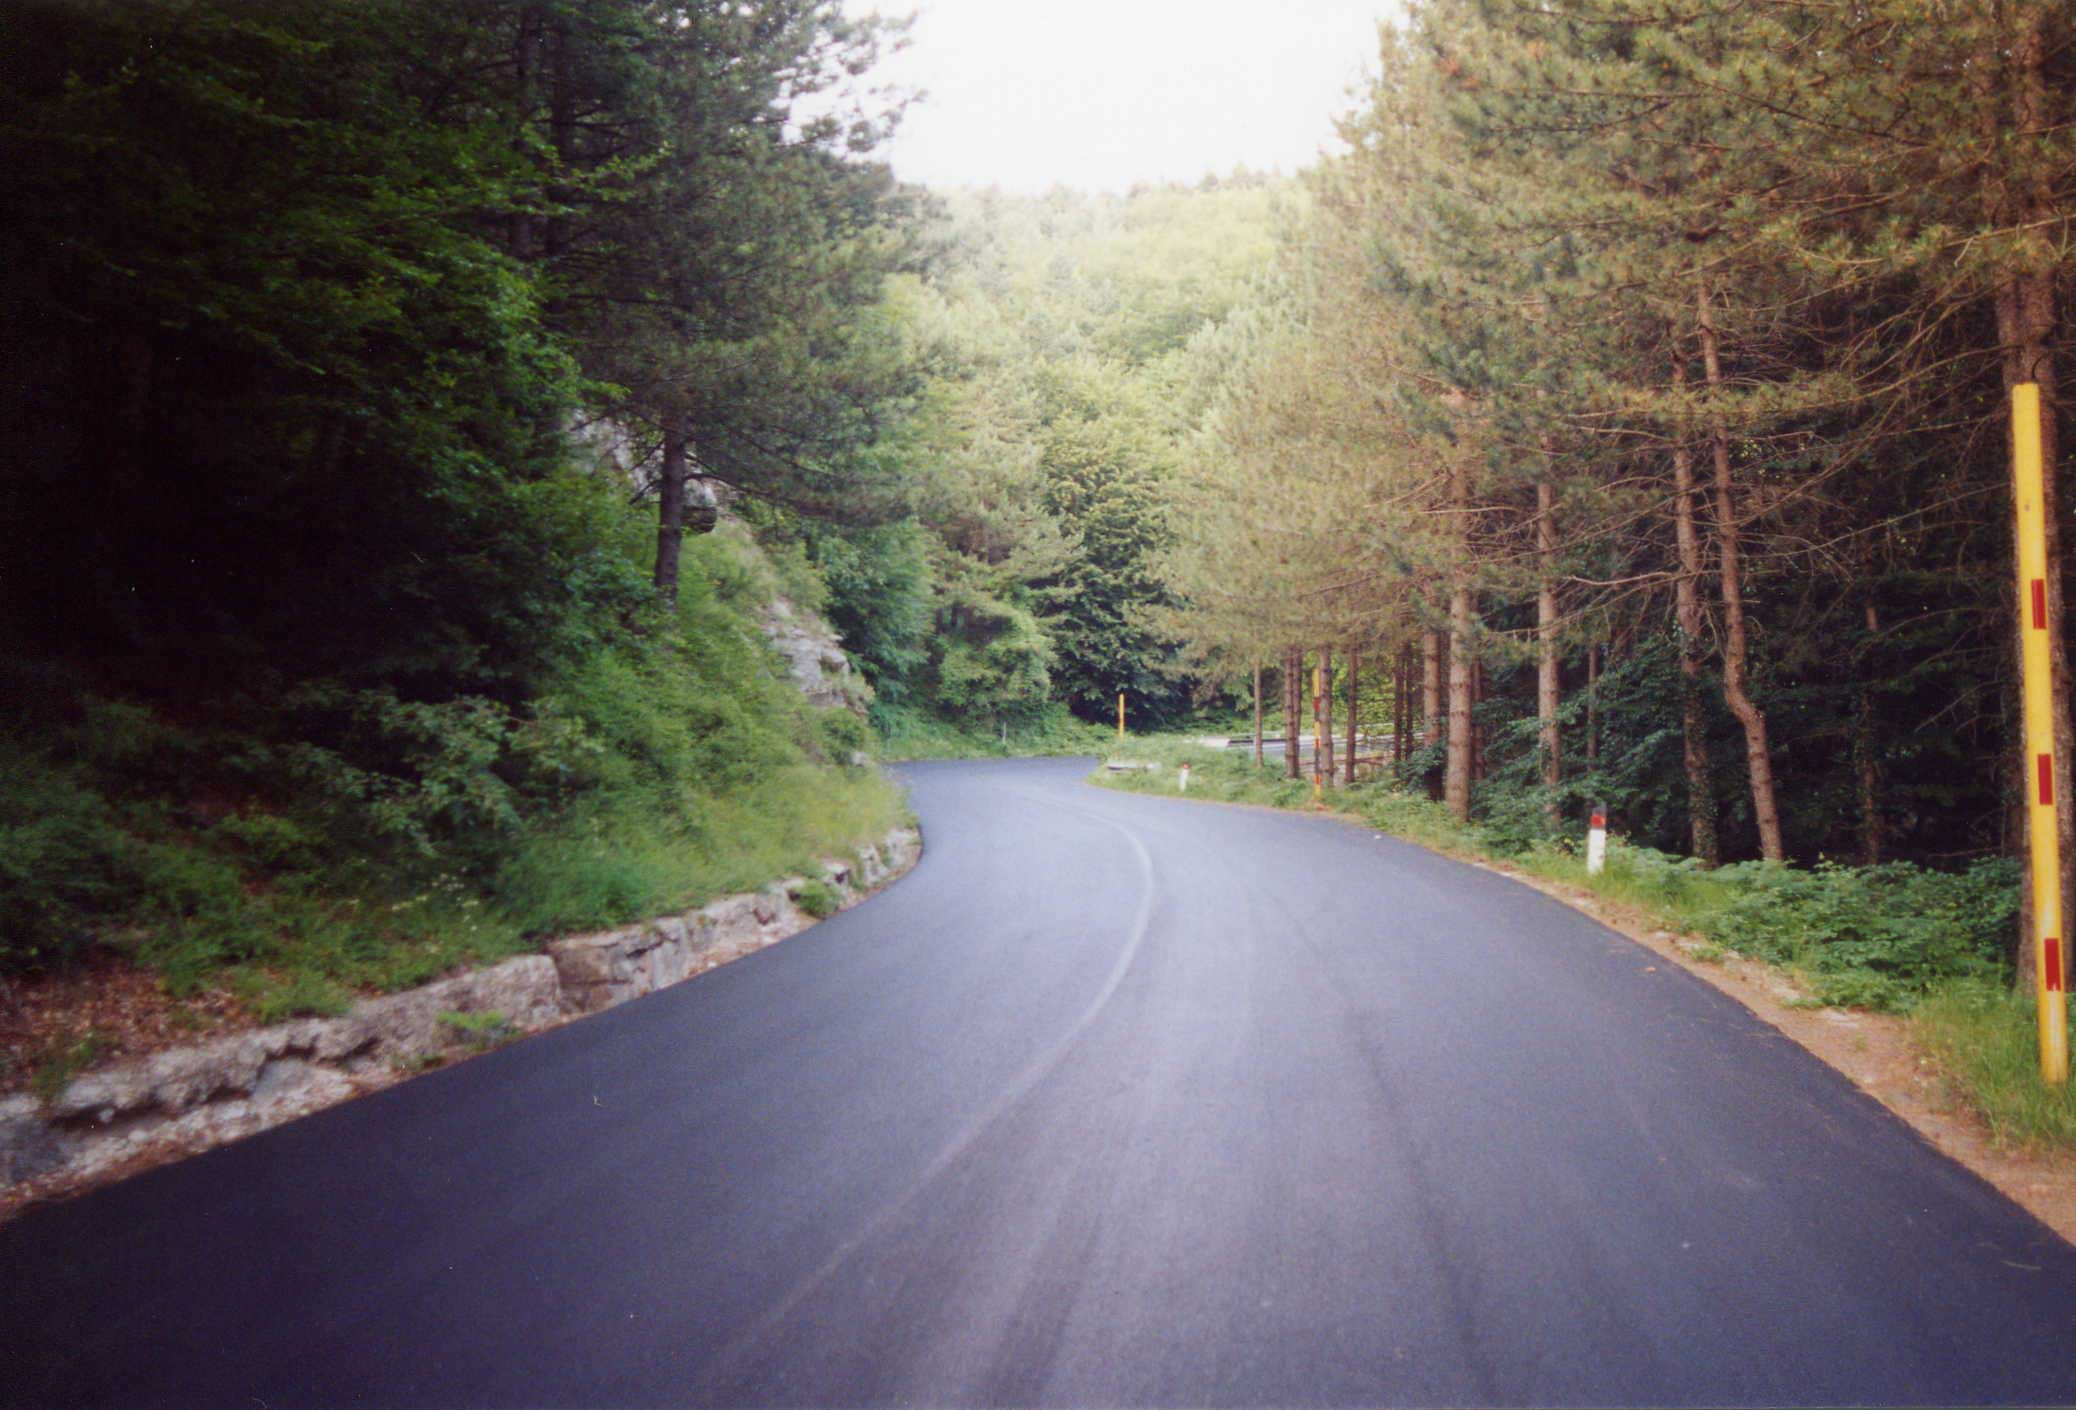 From Emilia-Romagna to Tuscany on two wheels: the Muraglione pass